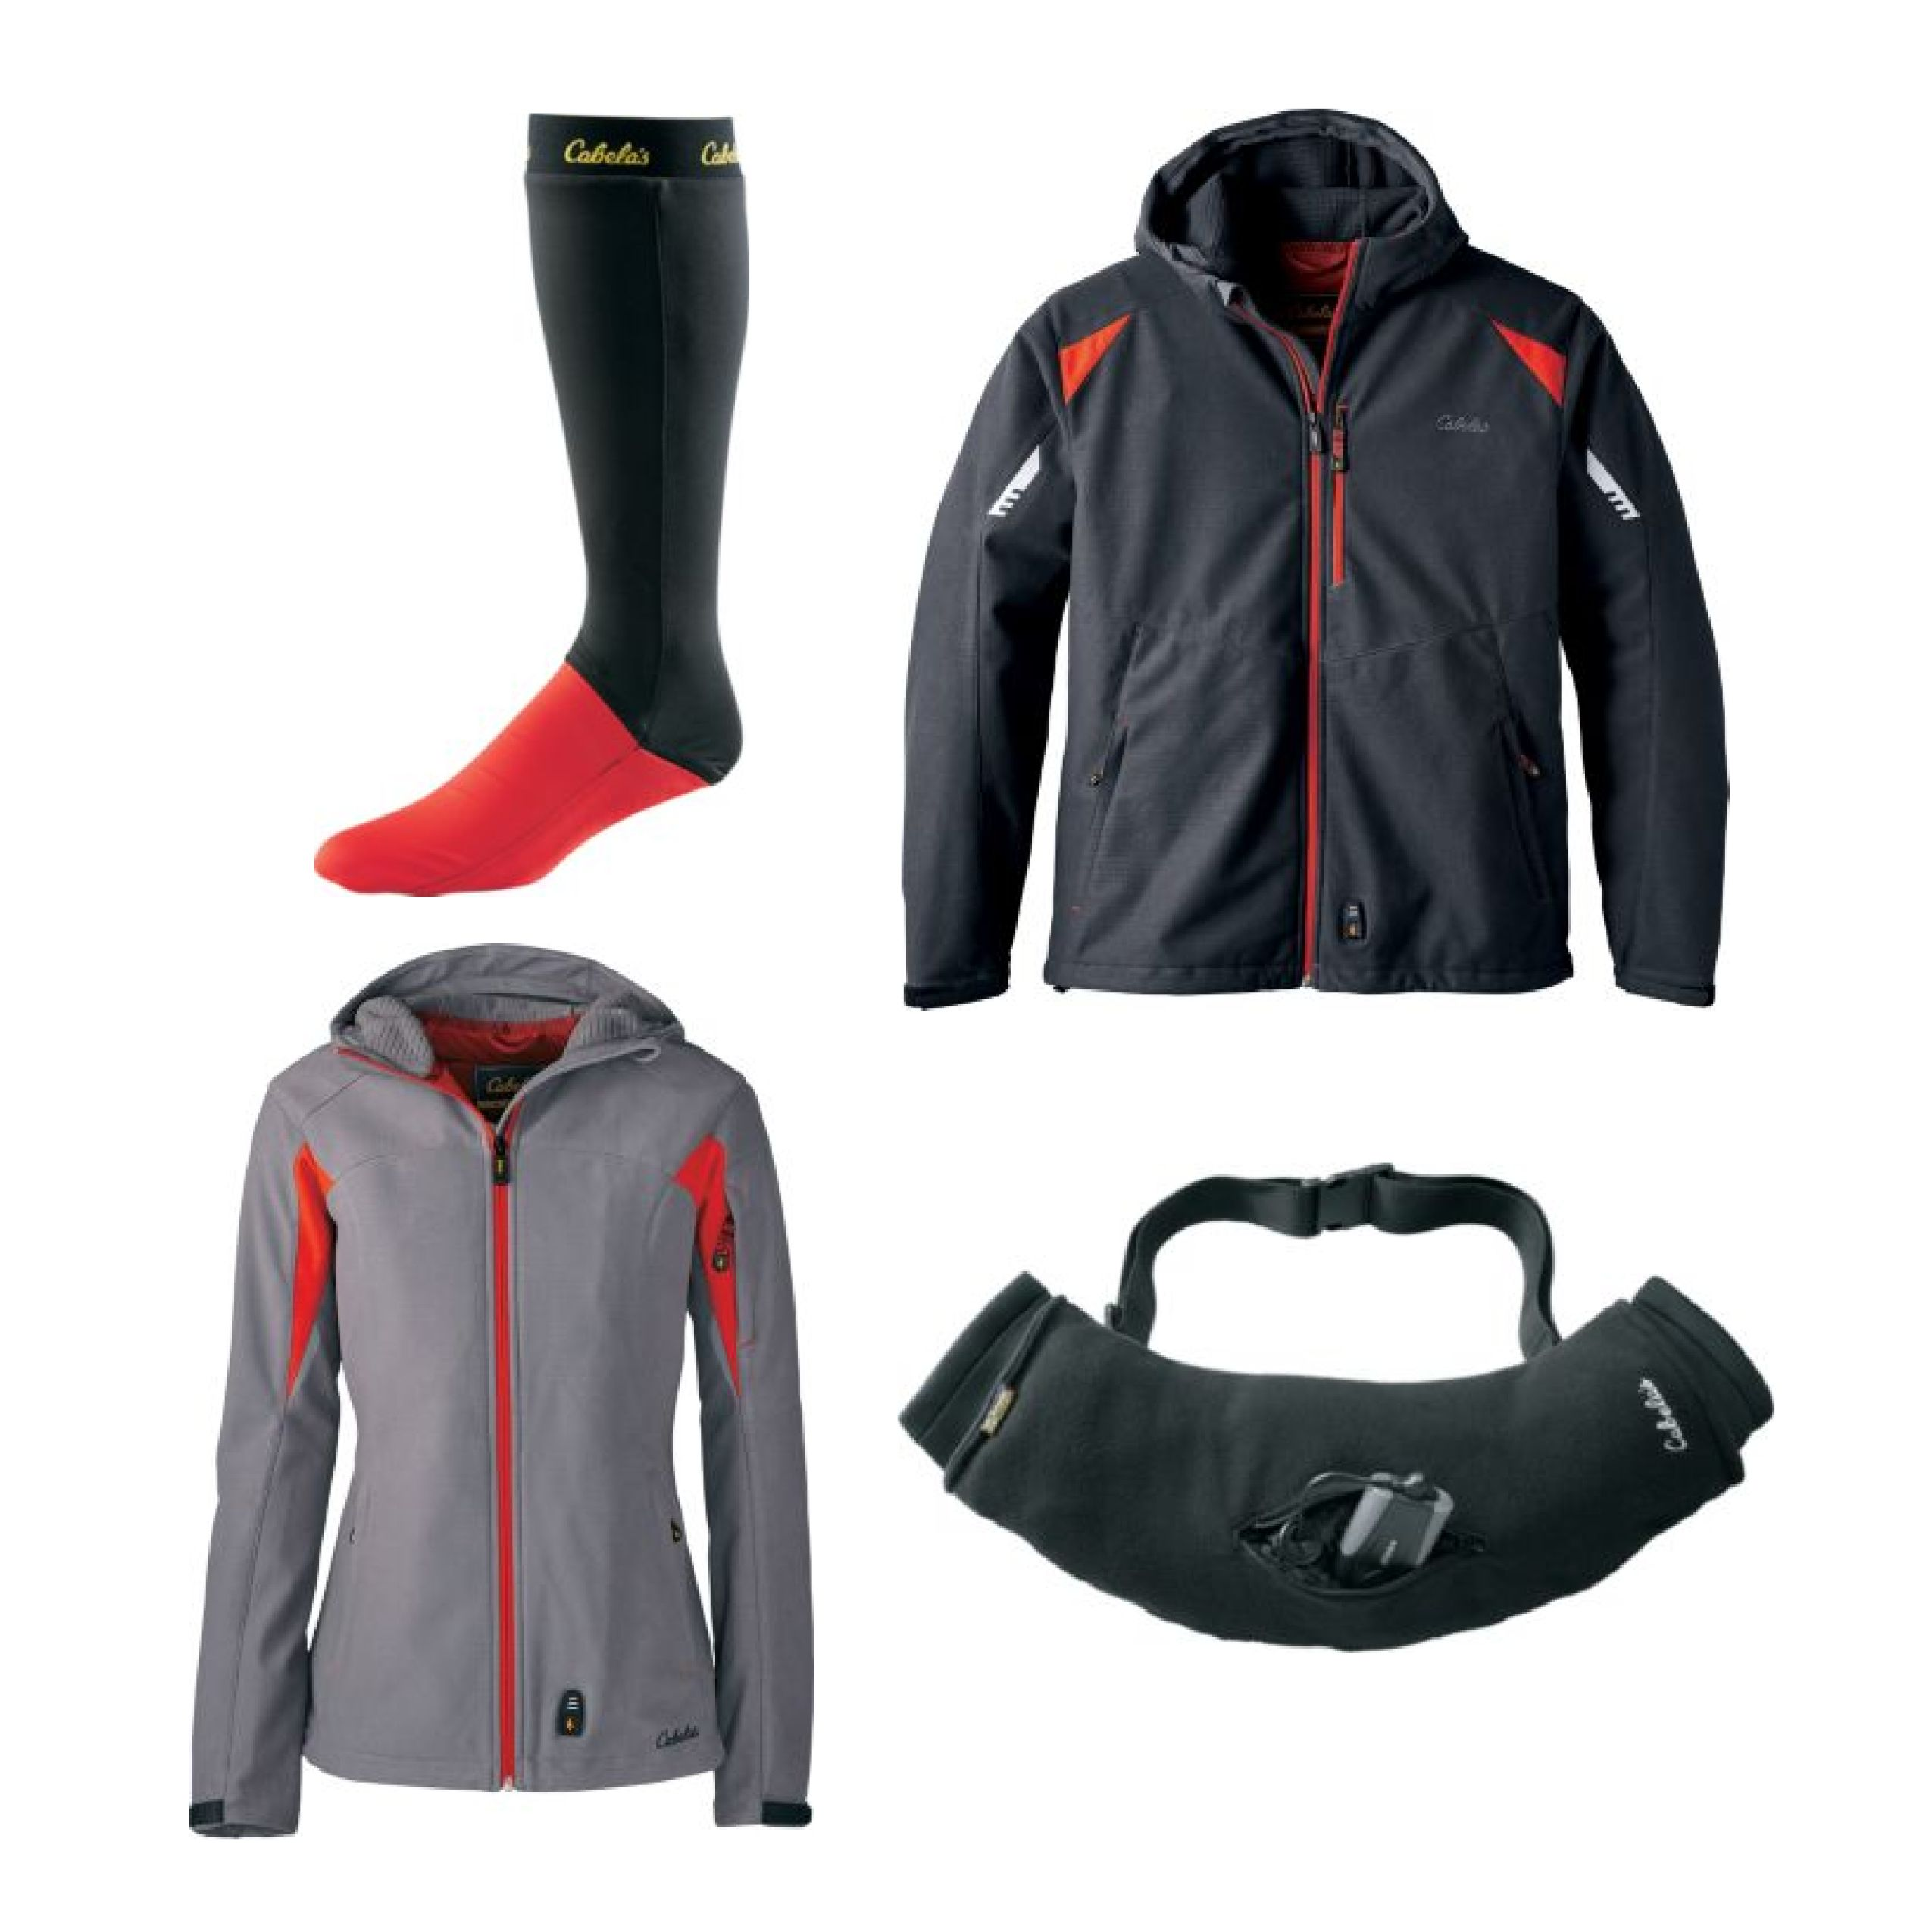 For battery-powered, push-button warmth, shop our heated performance gear.